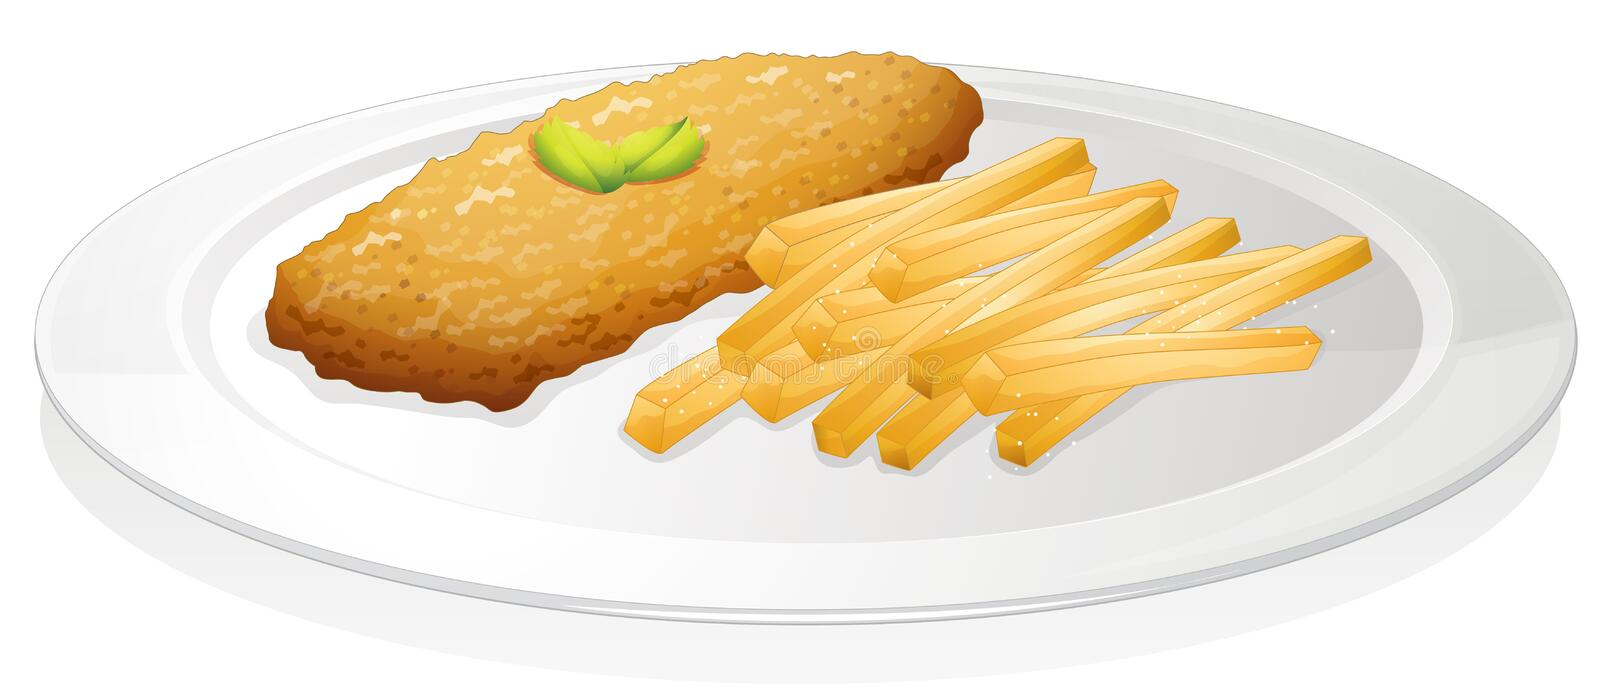 French fries and cutlet vector illustration